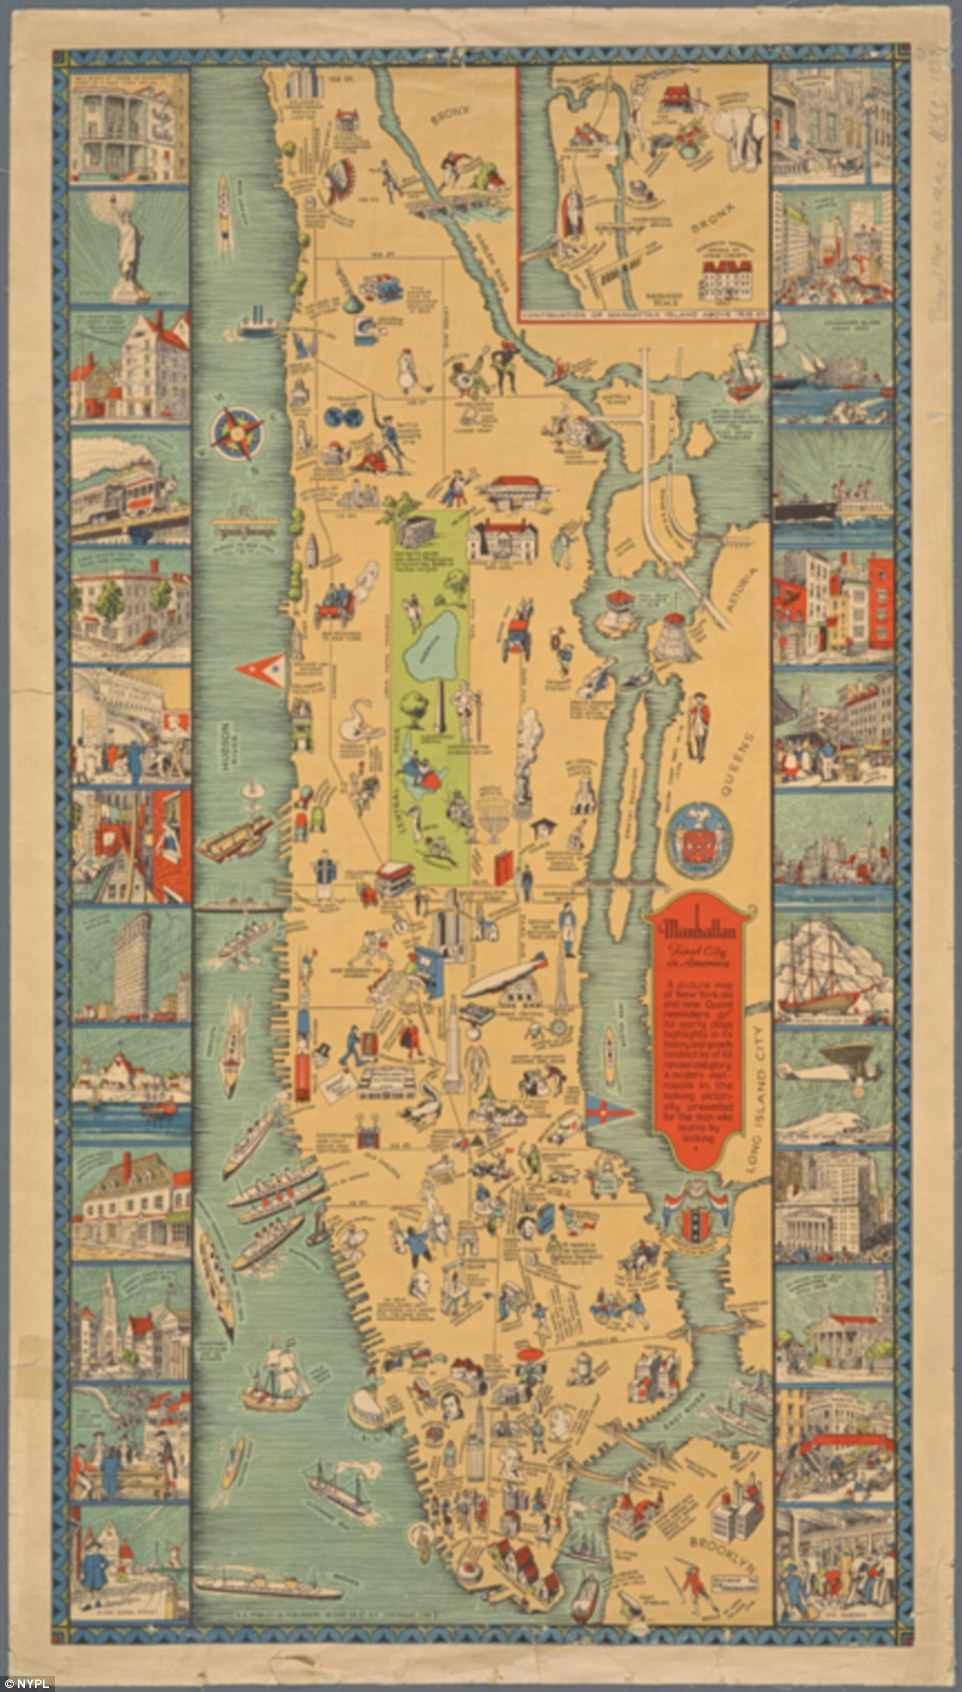 Pictorial Map of Manhattan 26 Vignettes Wall Poster Vintage Home School Office